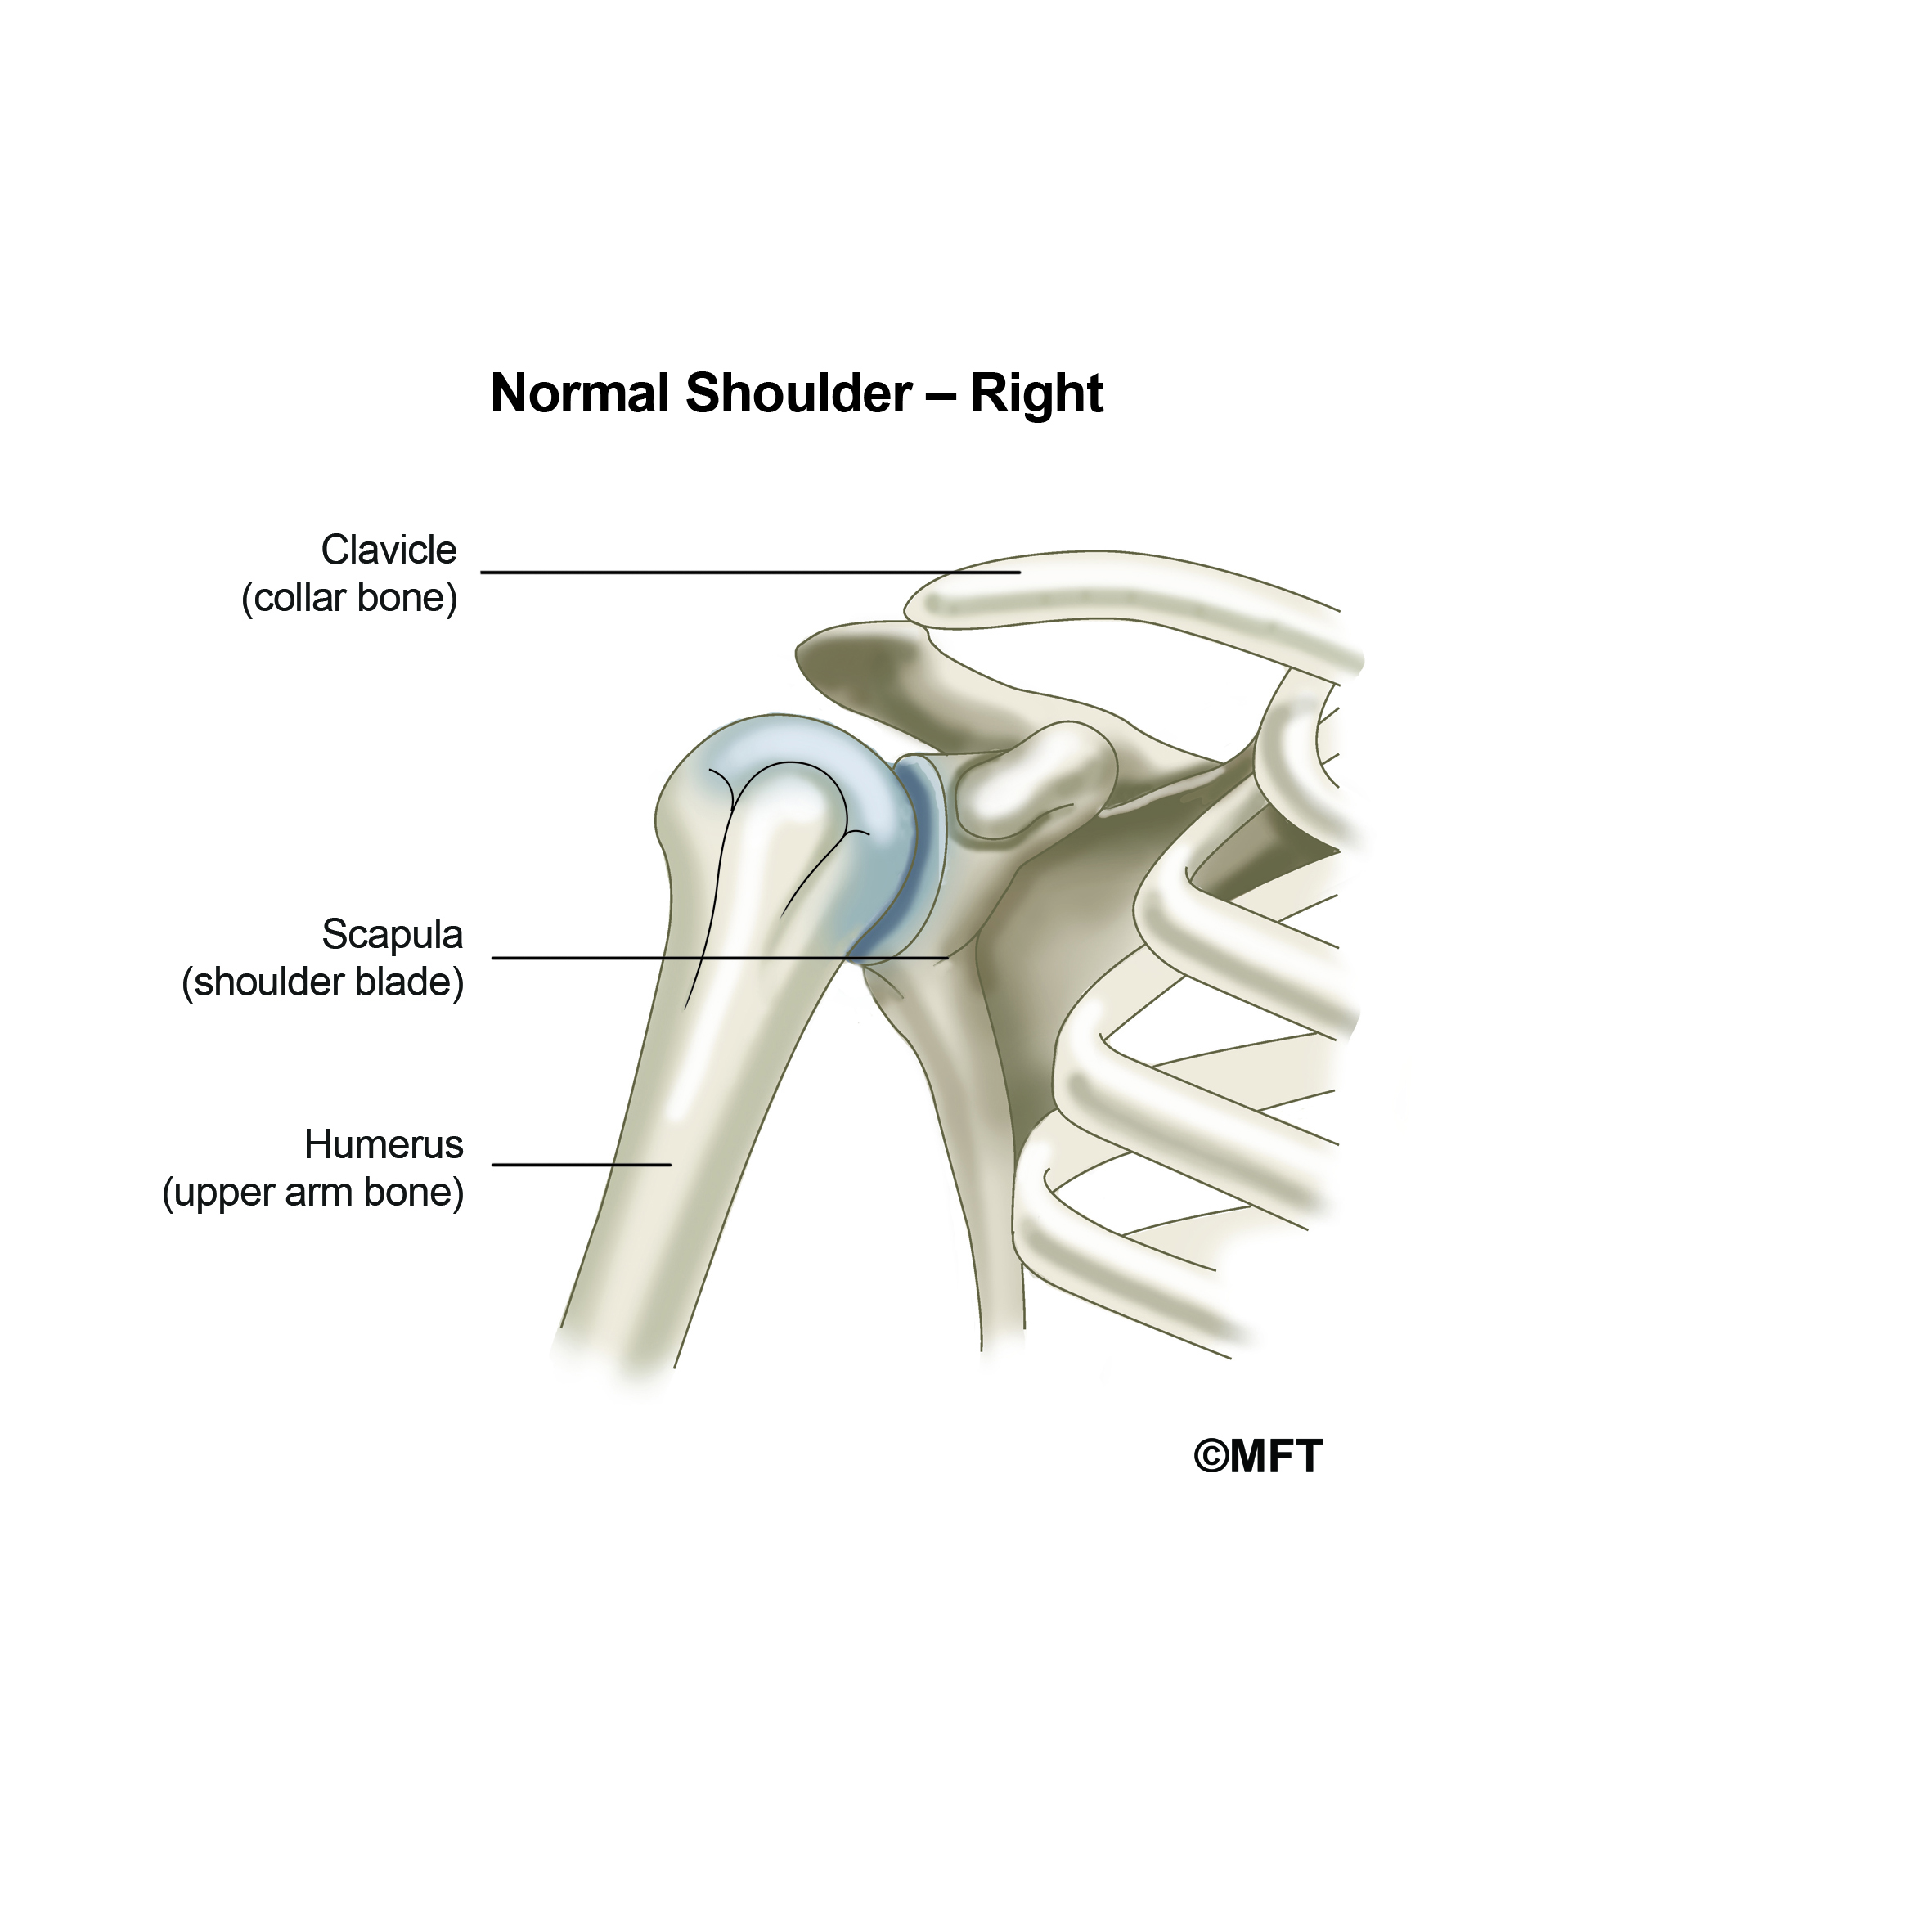 Normal Shoulder _ Right 01.jpg